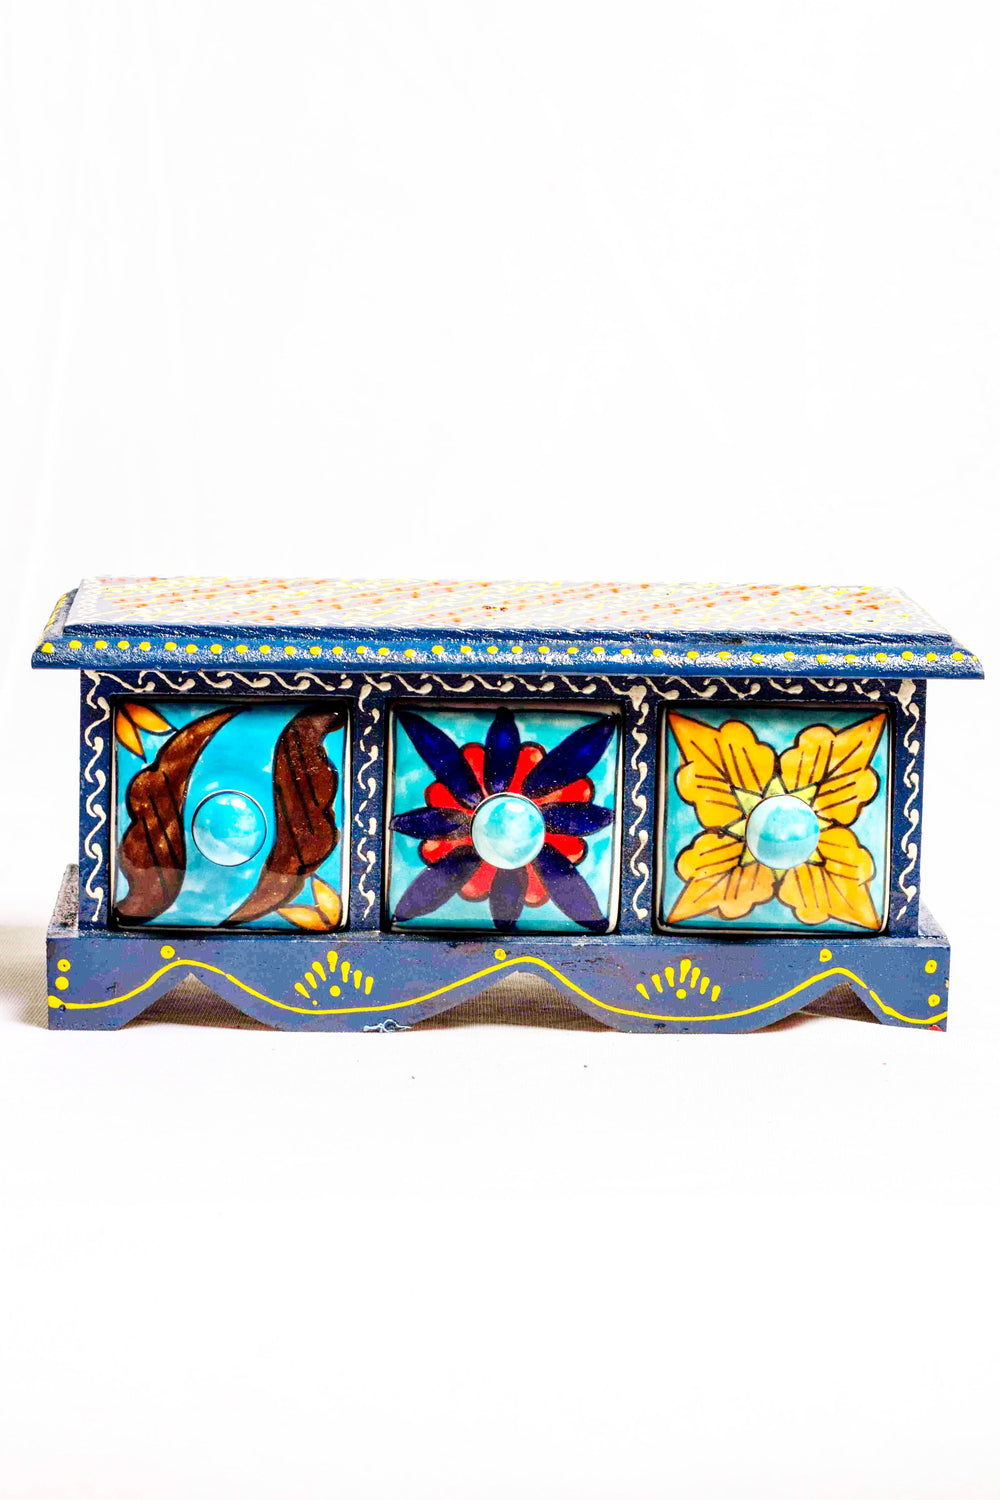 Chest of drawers in a dark blue framed wooden box with painted motifs, with 3 ceramic drawers